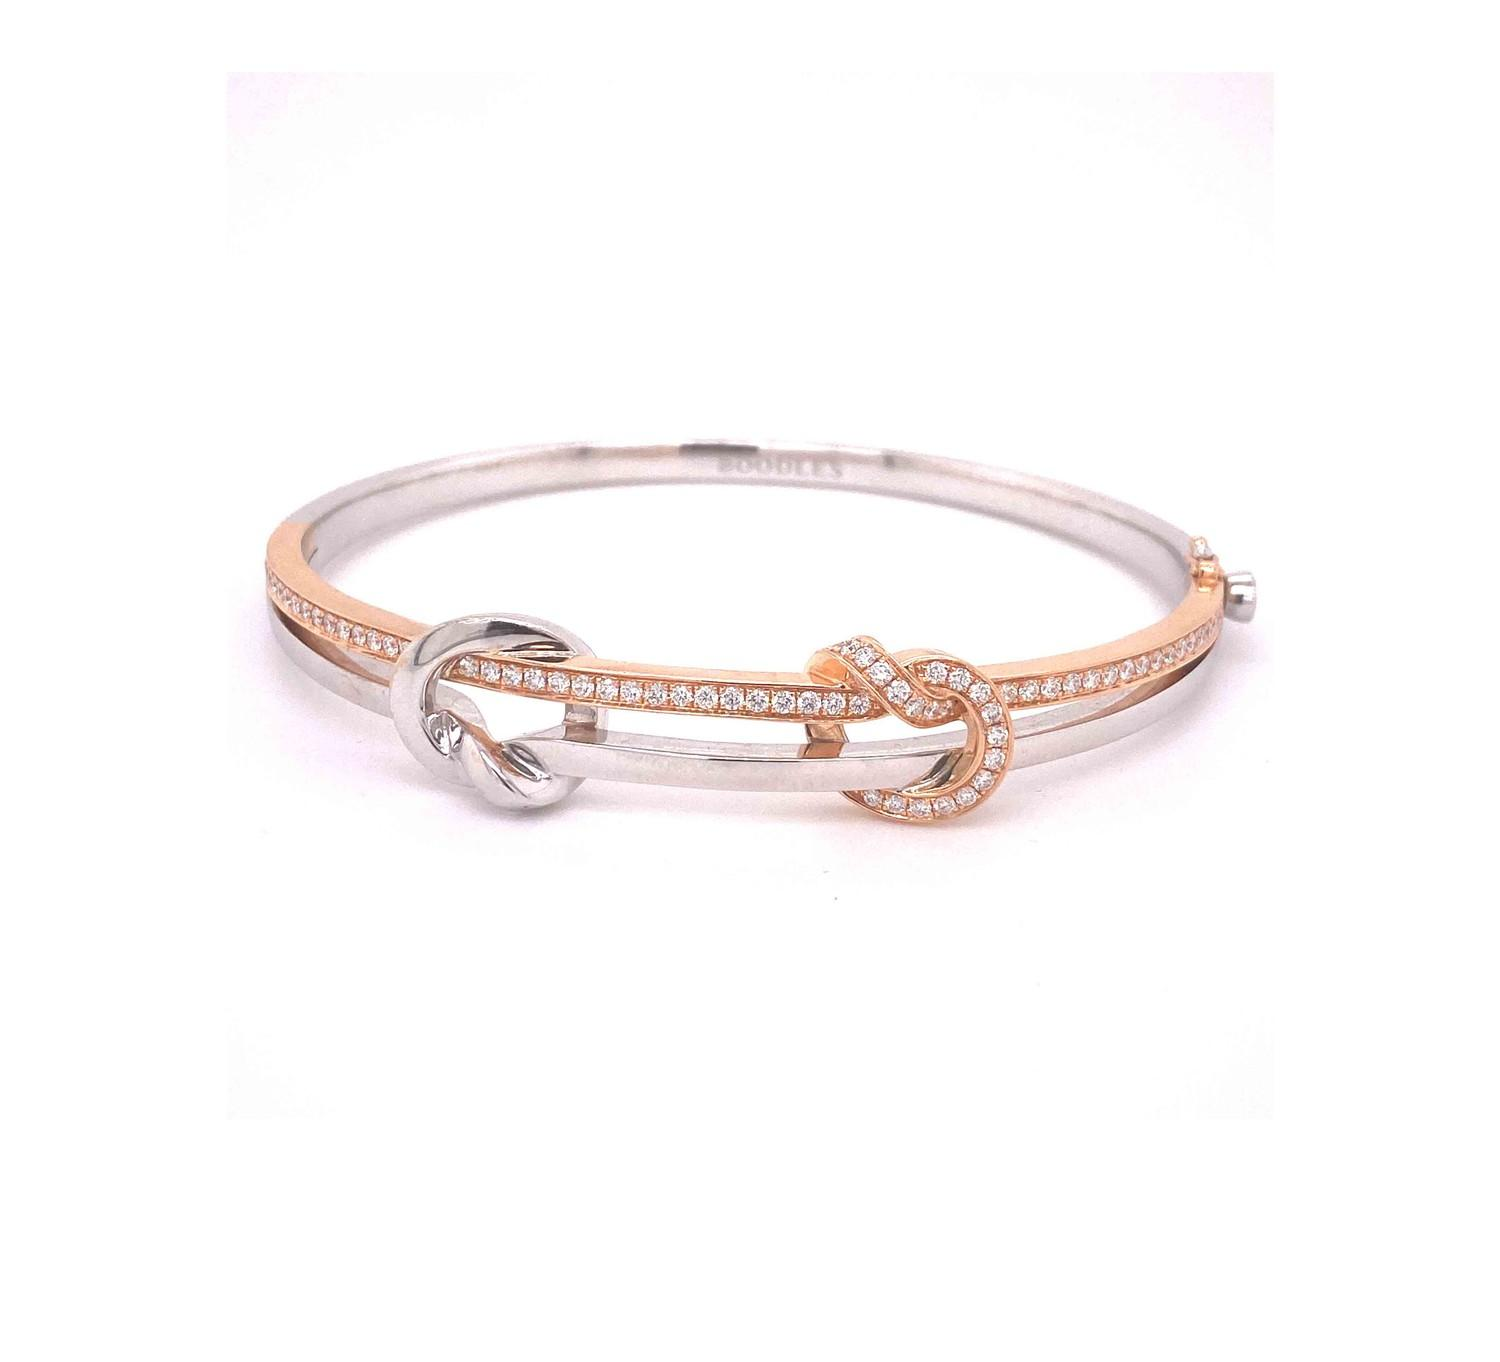 A Boodles diamond Love Knot bangle mounted in 18ct white and rose gold. Signed Boodles. London, - Image 2 of 5